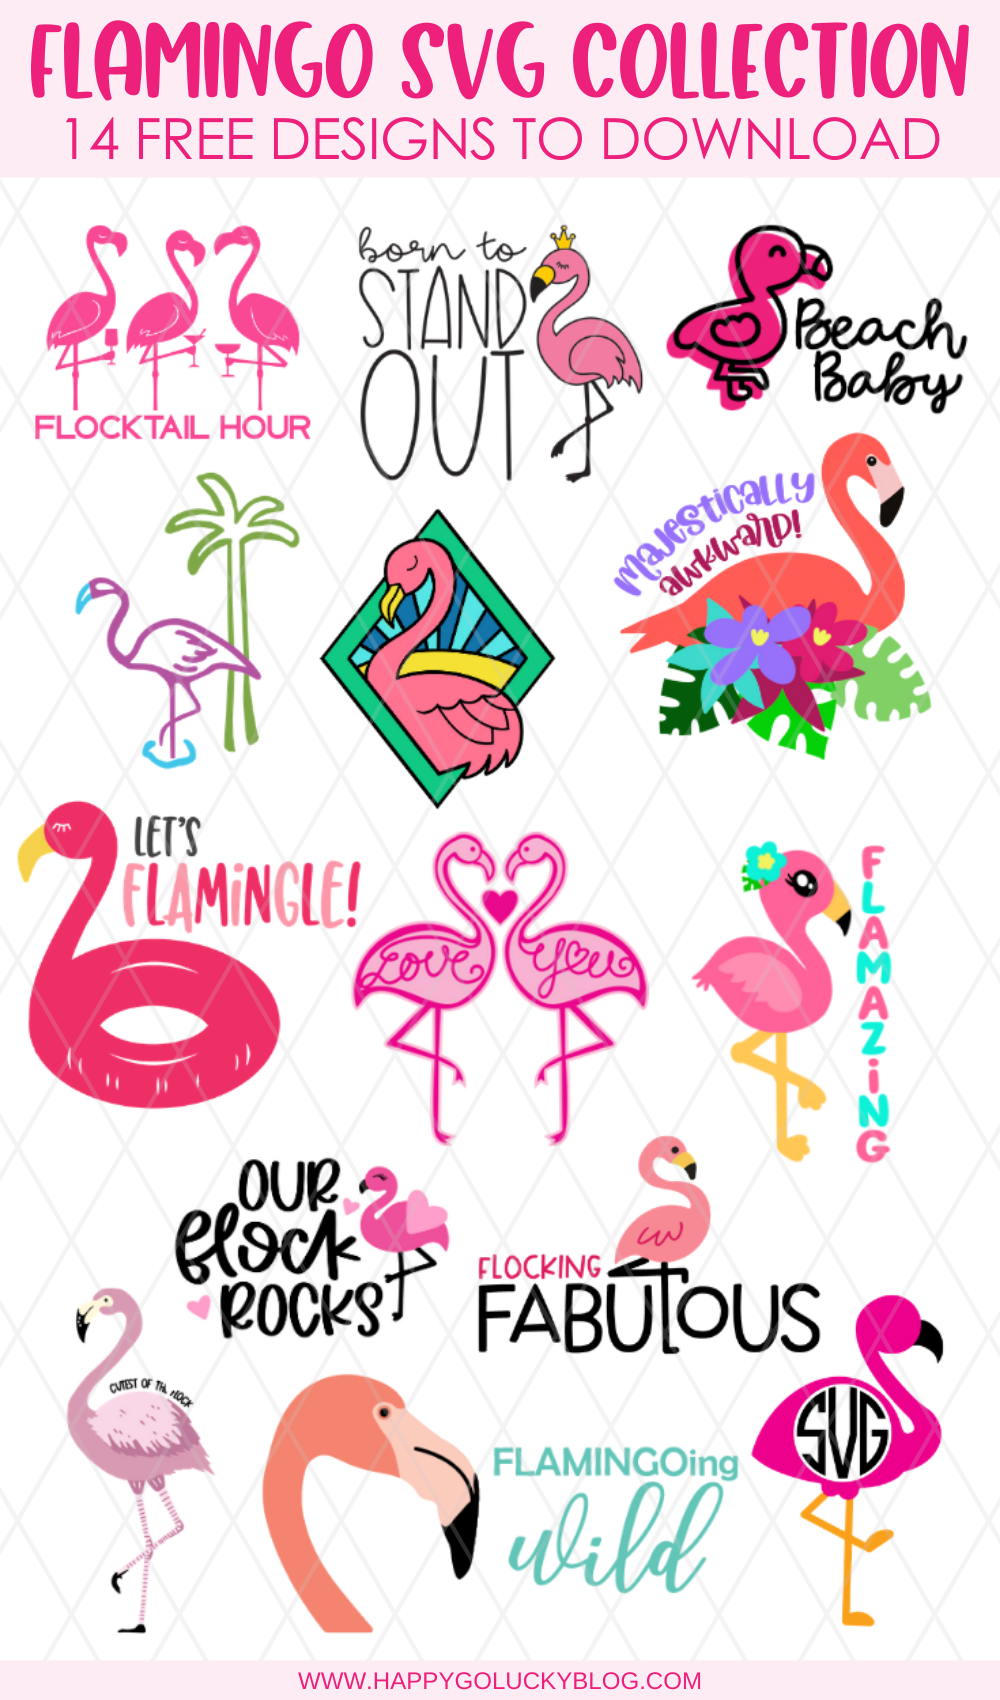 Flamingo SVG Collection